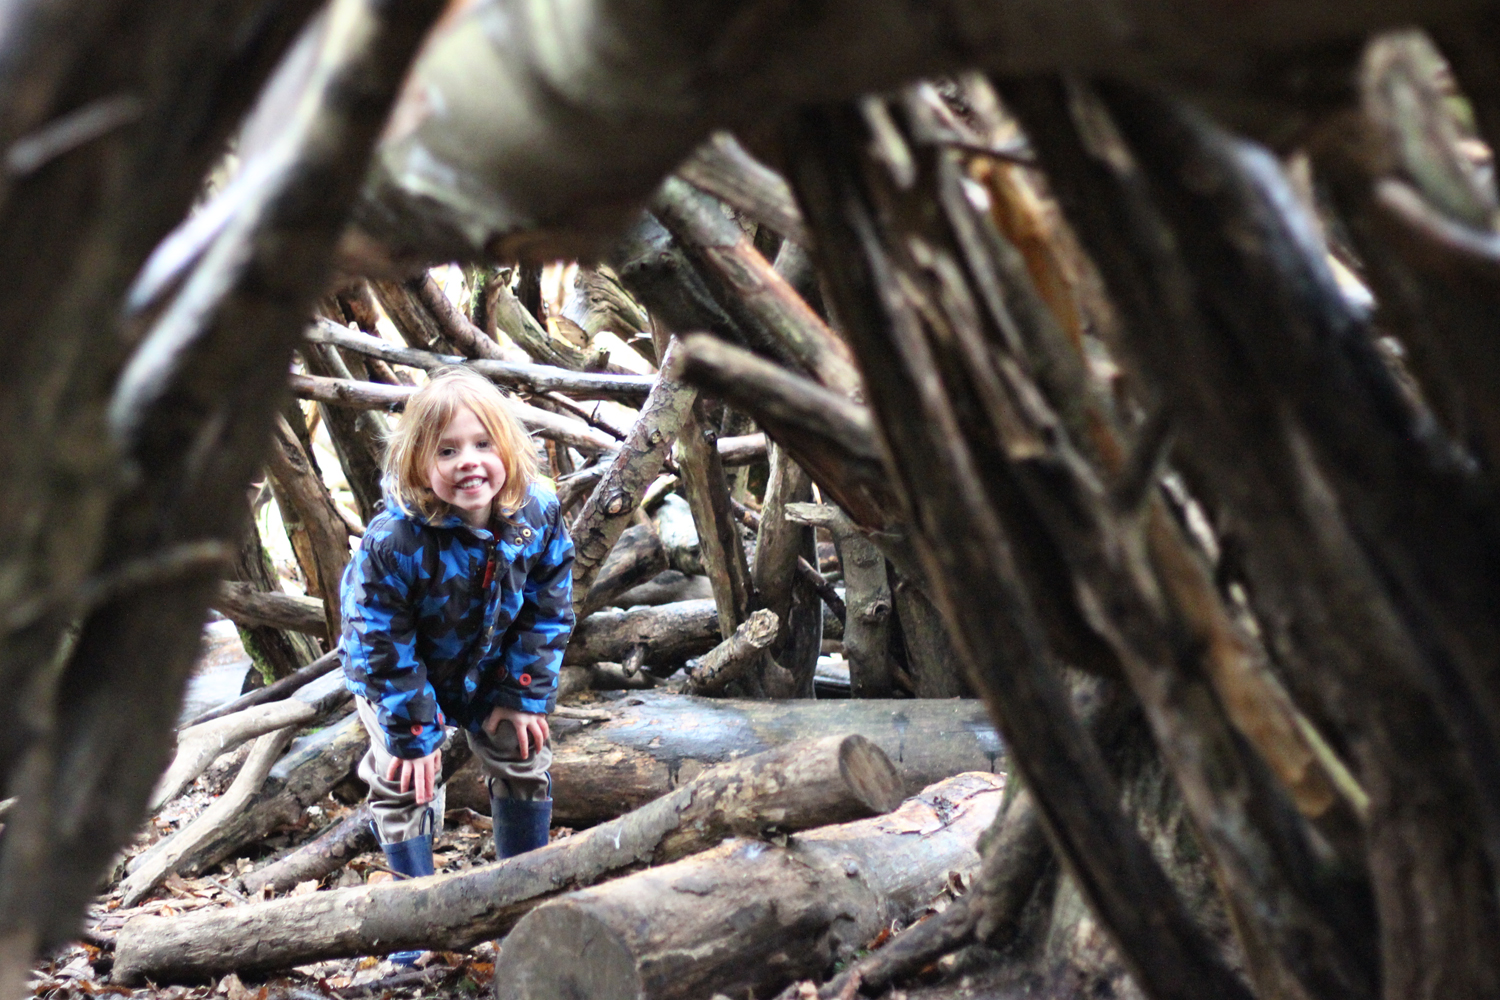 winter den building in the forest